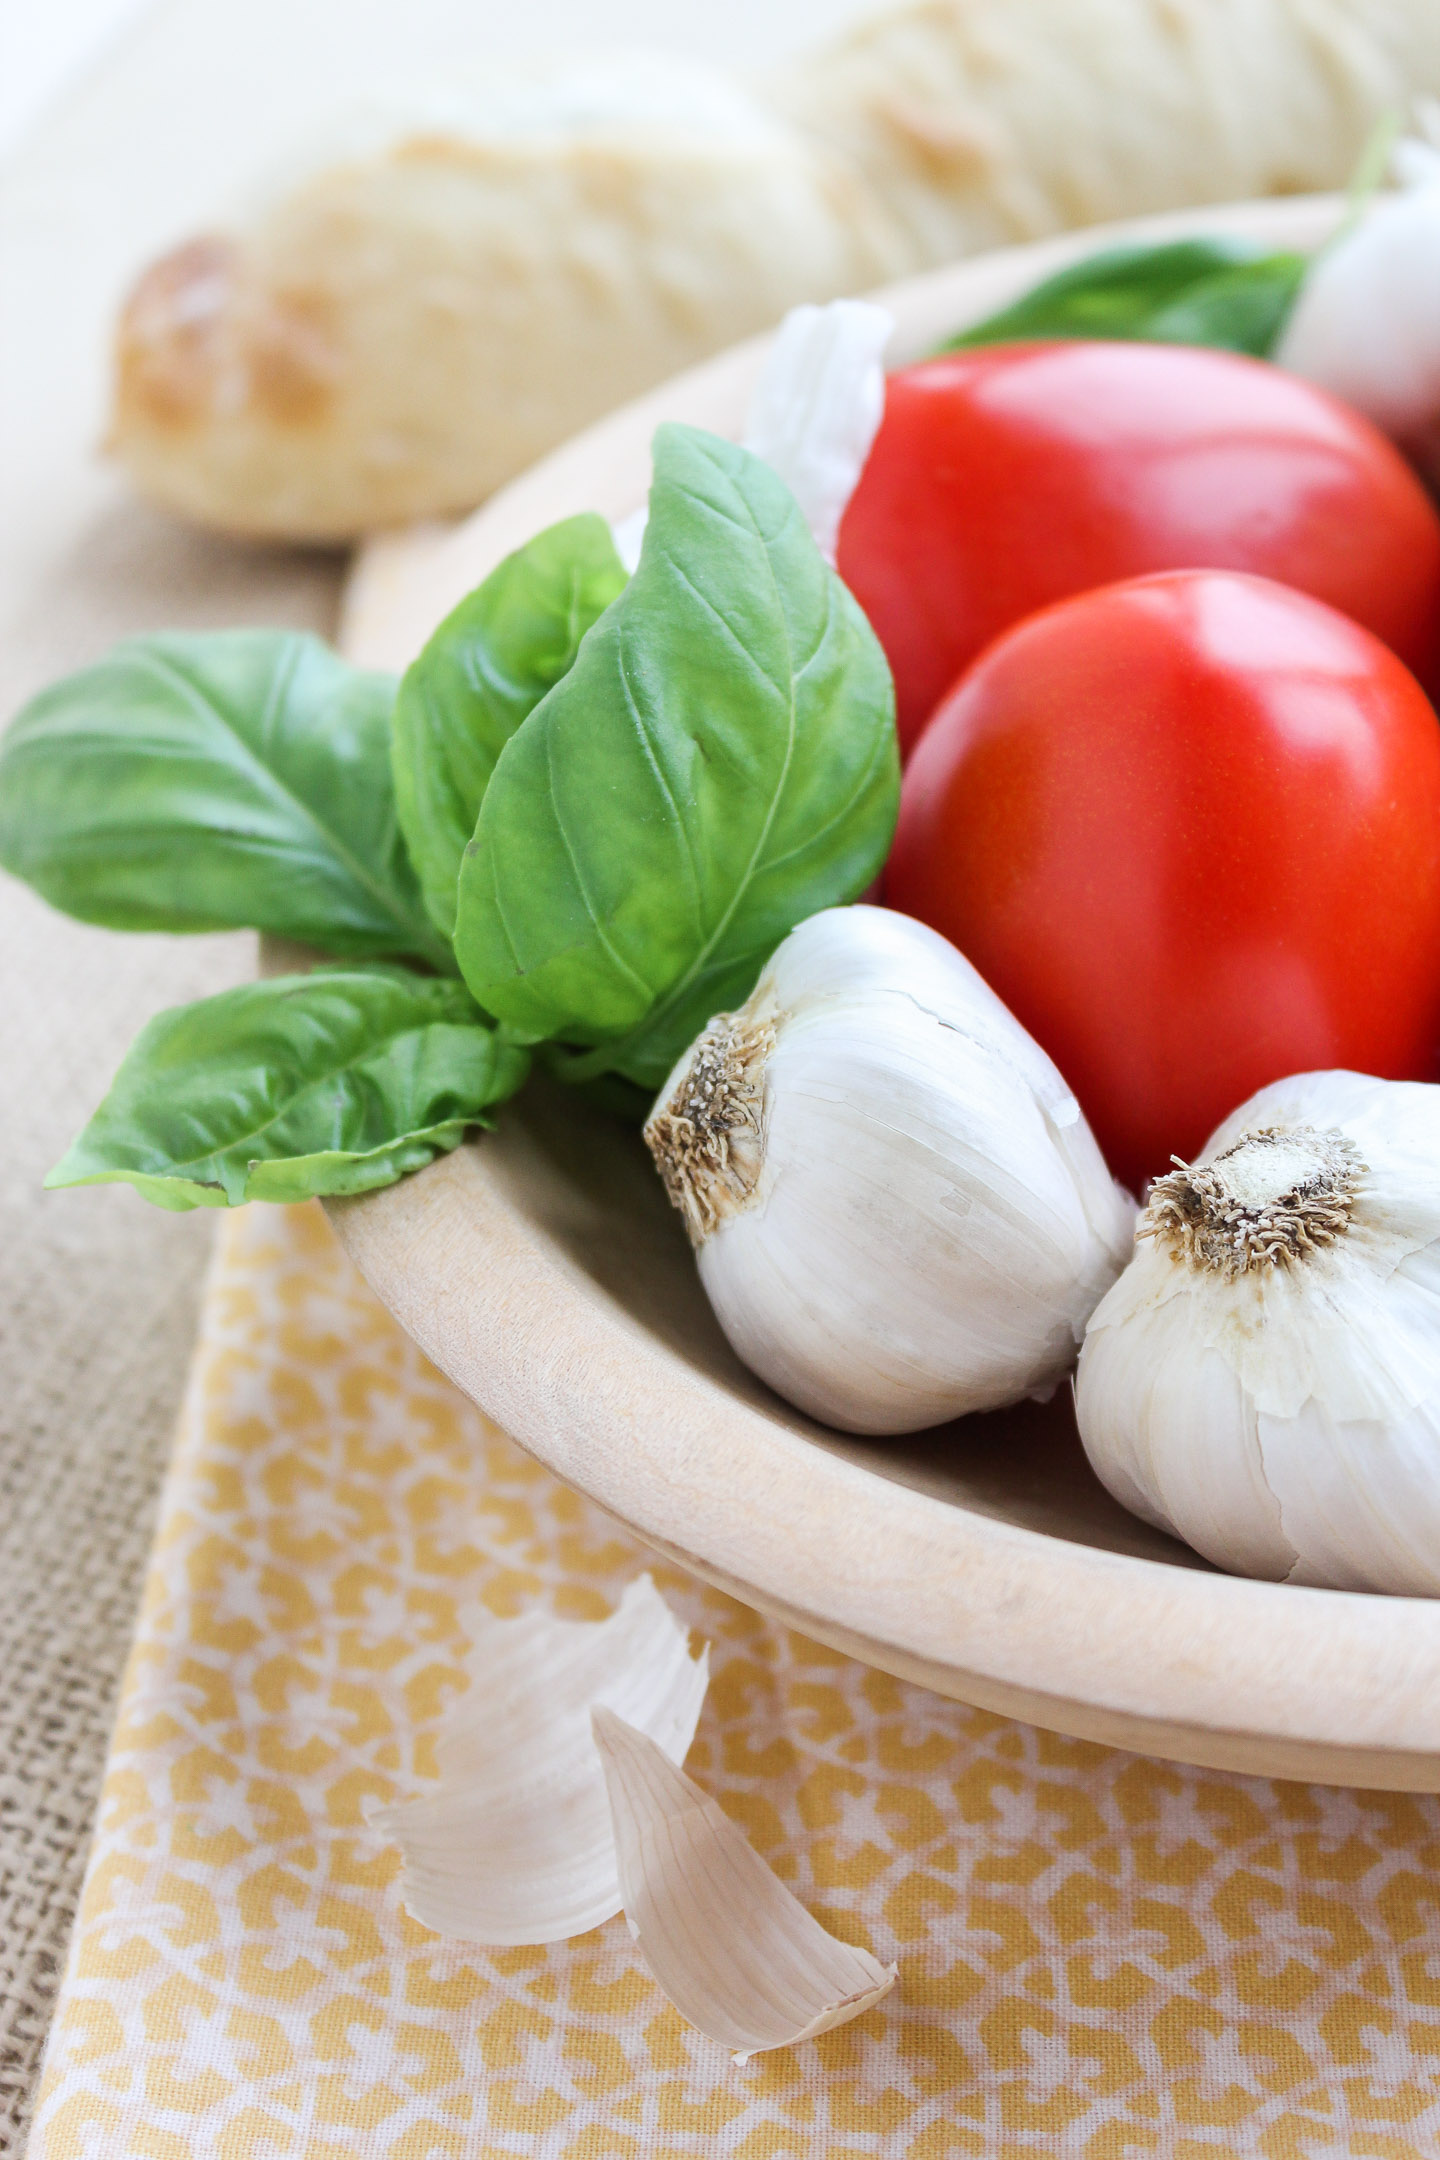 Tomatoes, basil and garlic in a bowl.